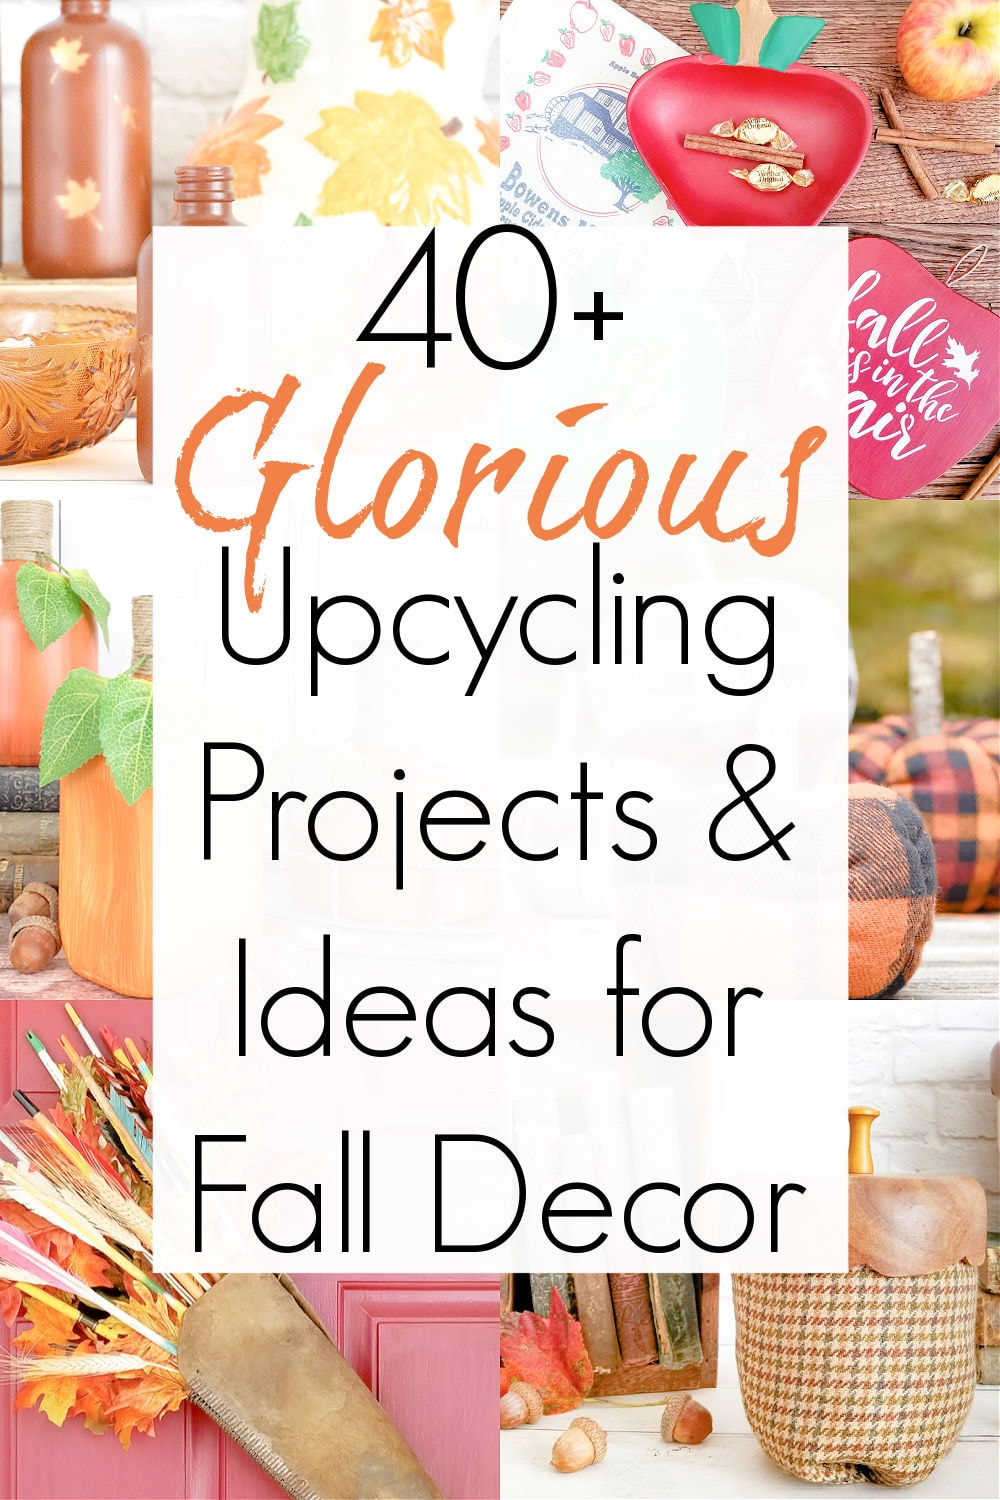 upcycling projects for autumn decorations